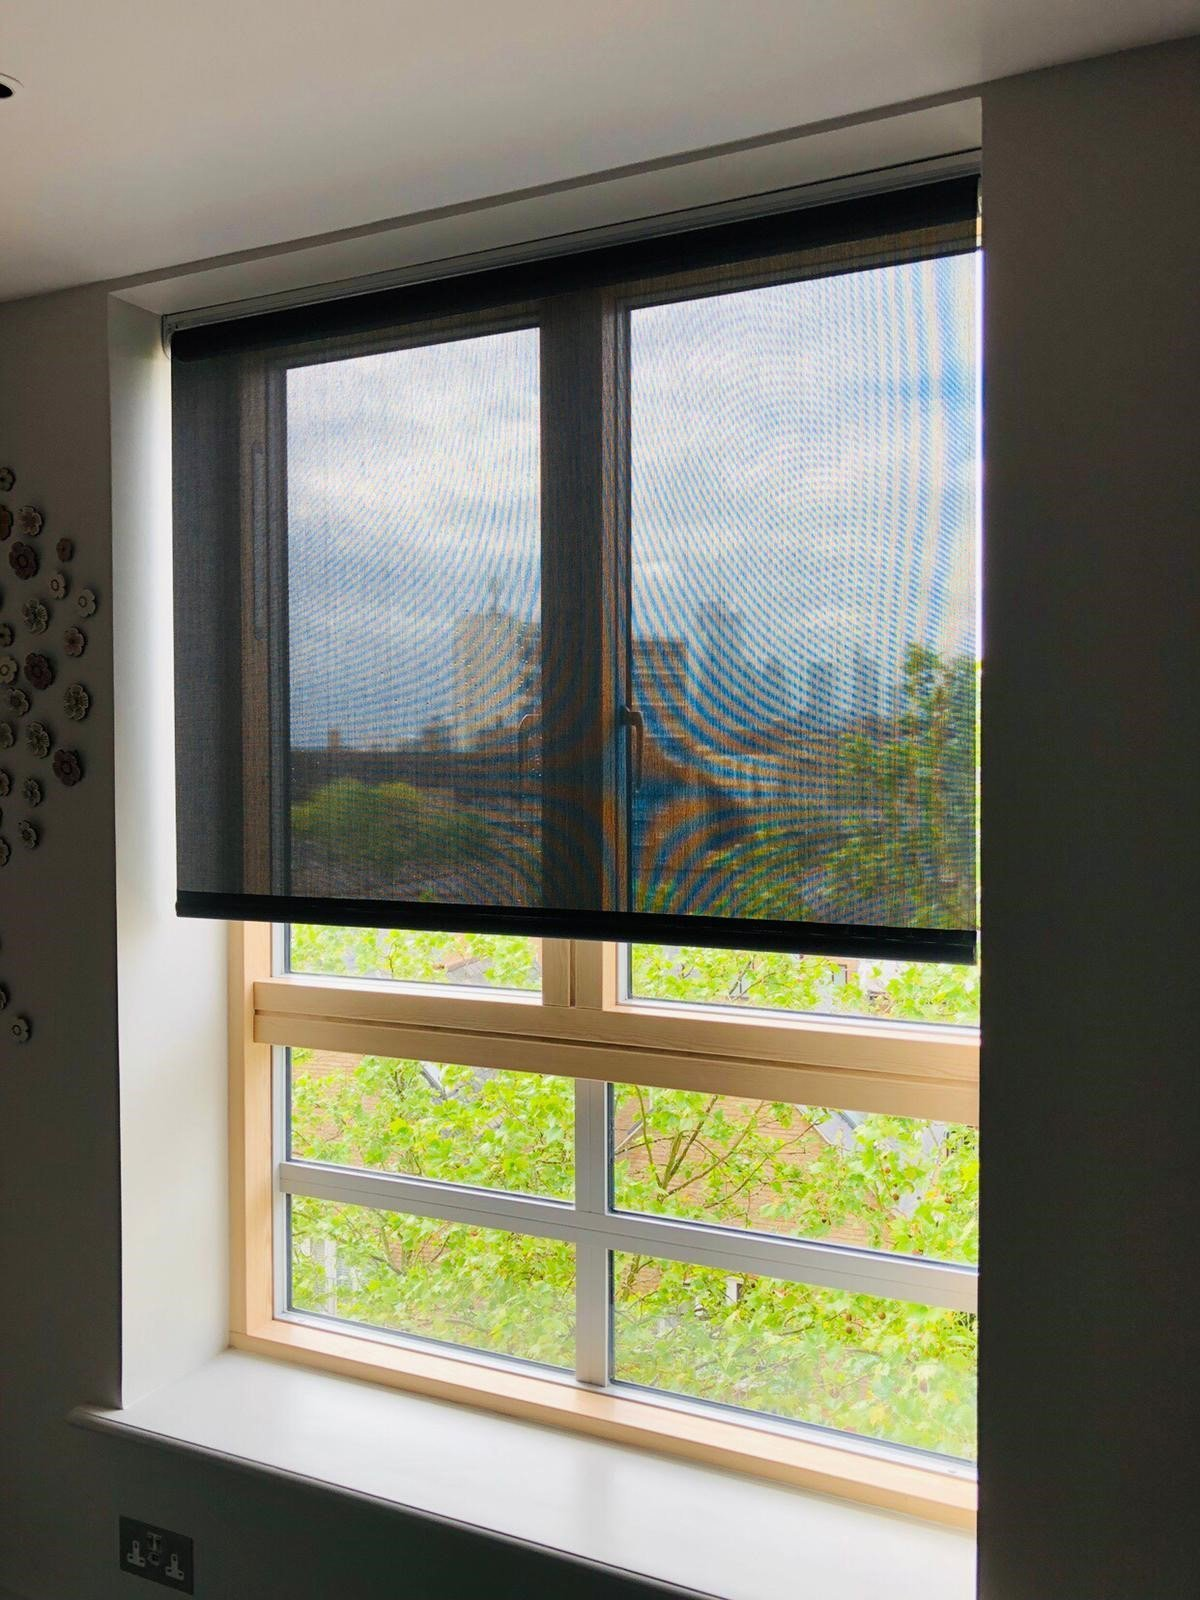 Silent Gliss Battery Operated Roller Blind in Screen Fabric